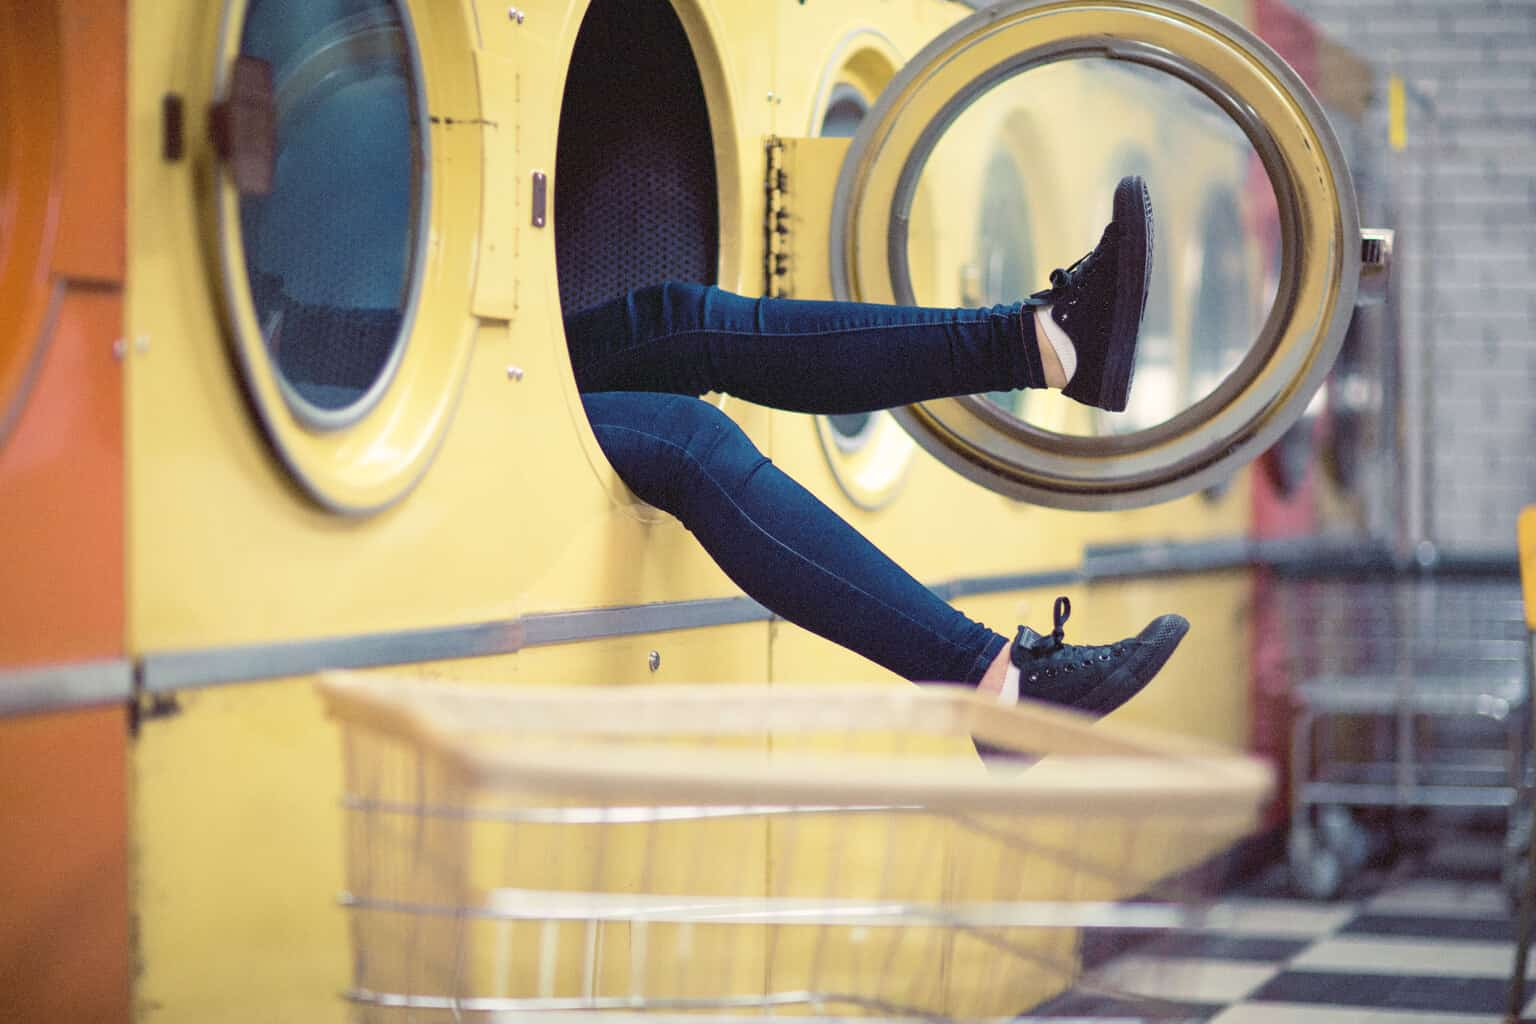 a girl in dark jeans sticking her legs out of a washing machine